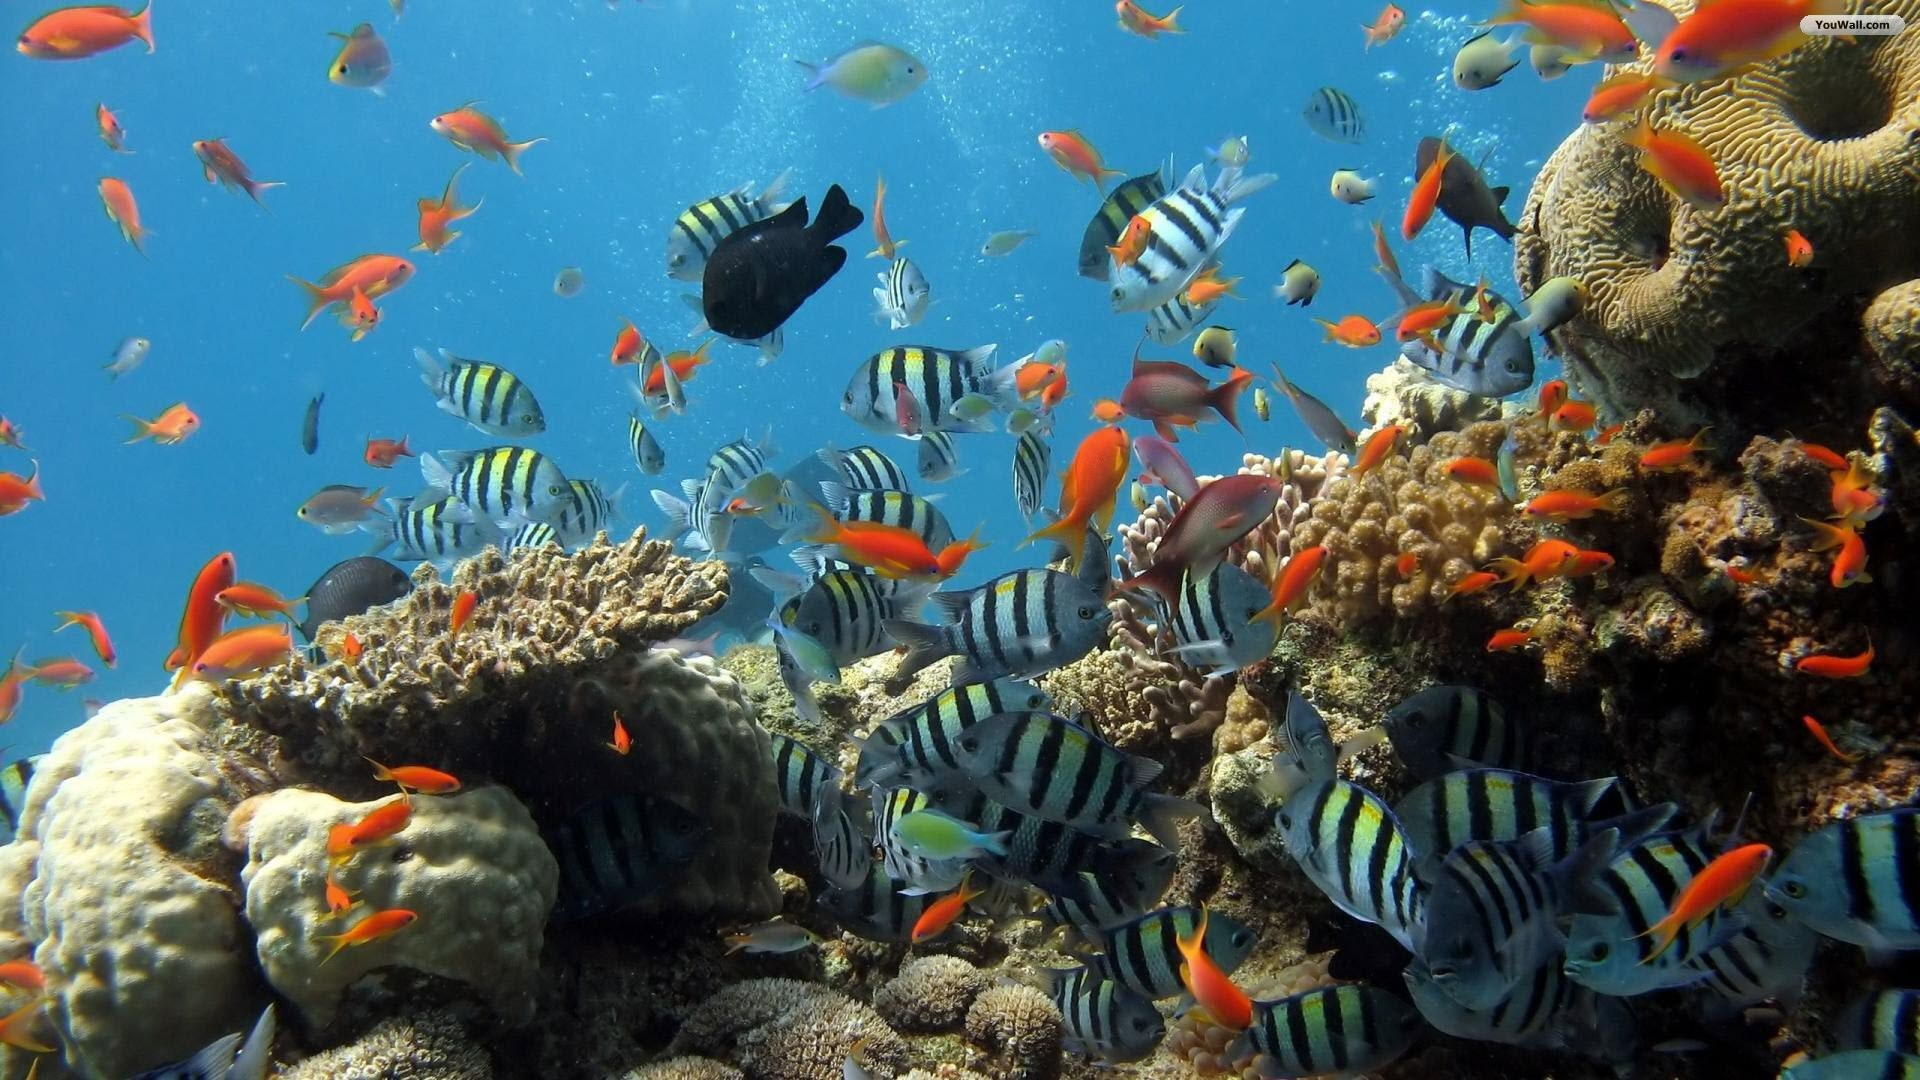 1920x1080 PC  Coral Reef Wallpapers, Desktop-Screens Pack II